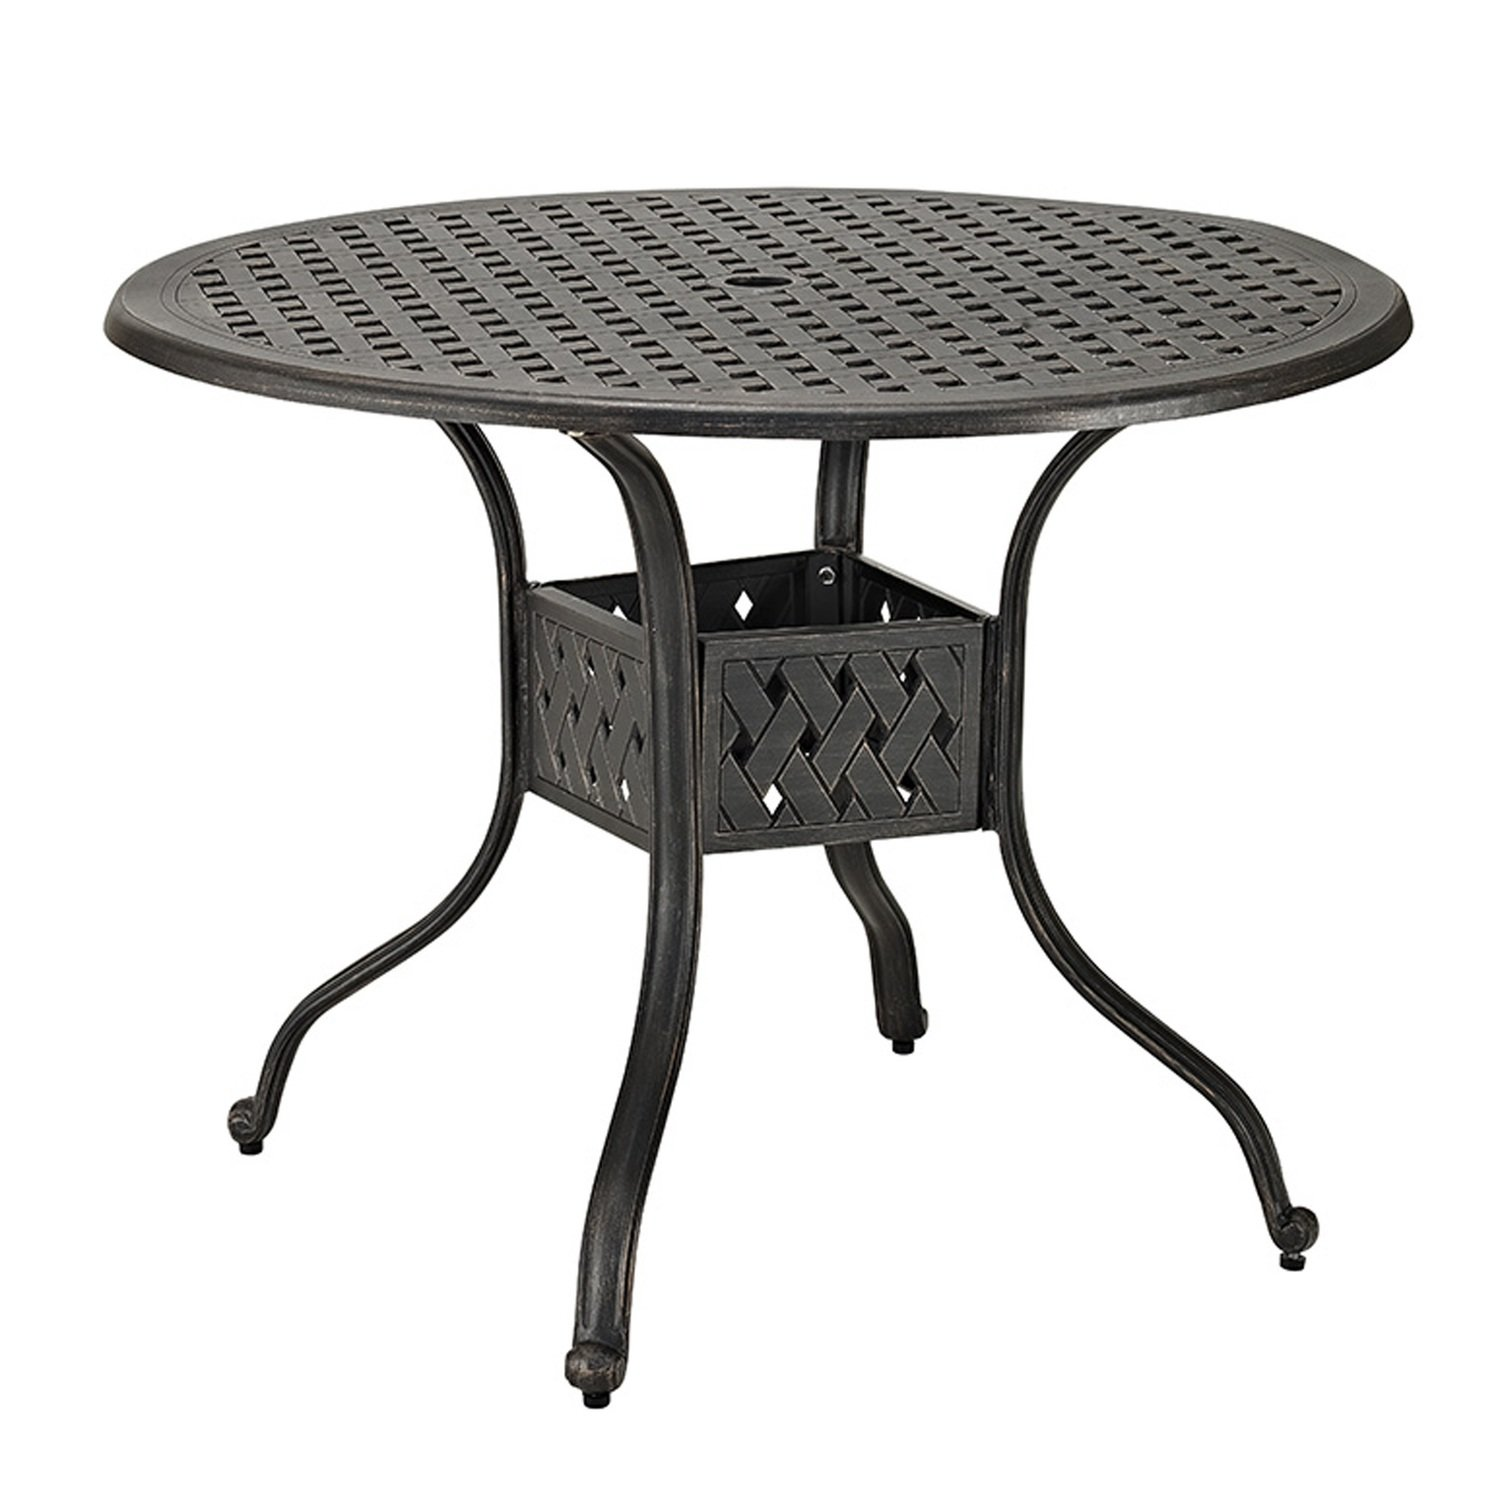 "Hyde Park 42"" Round Patio Dining Table"